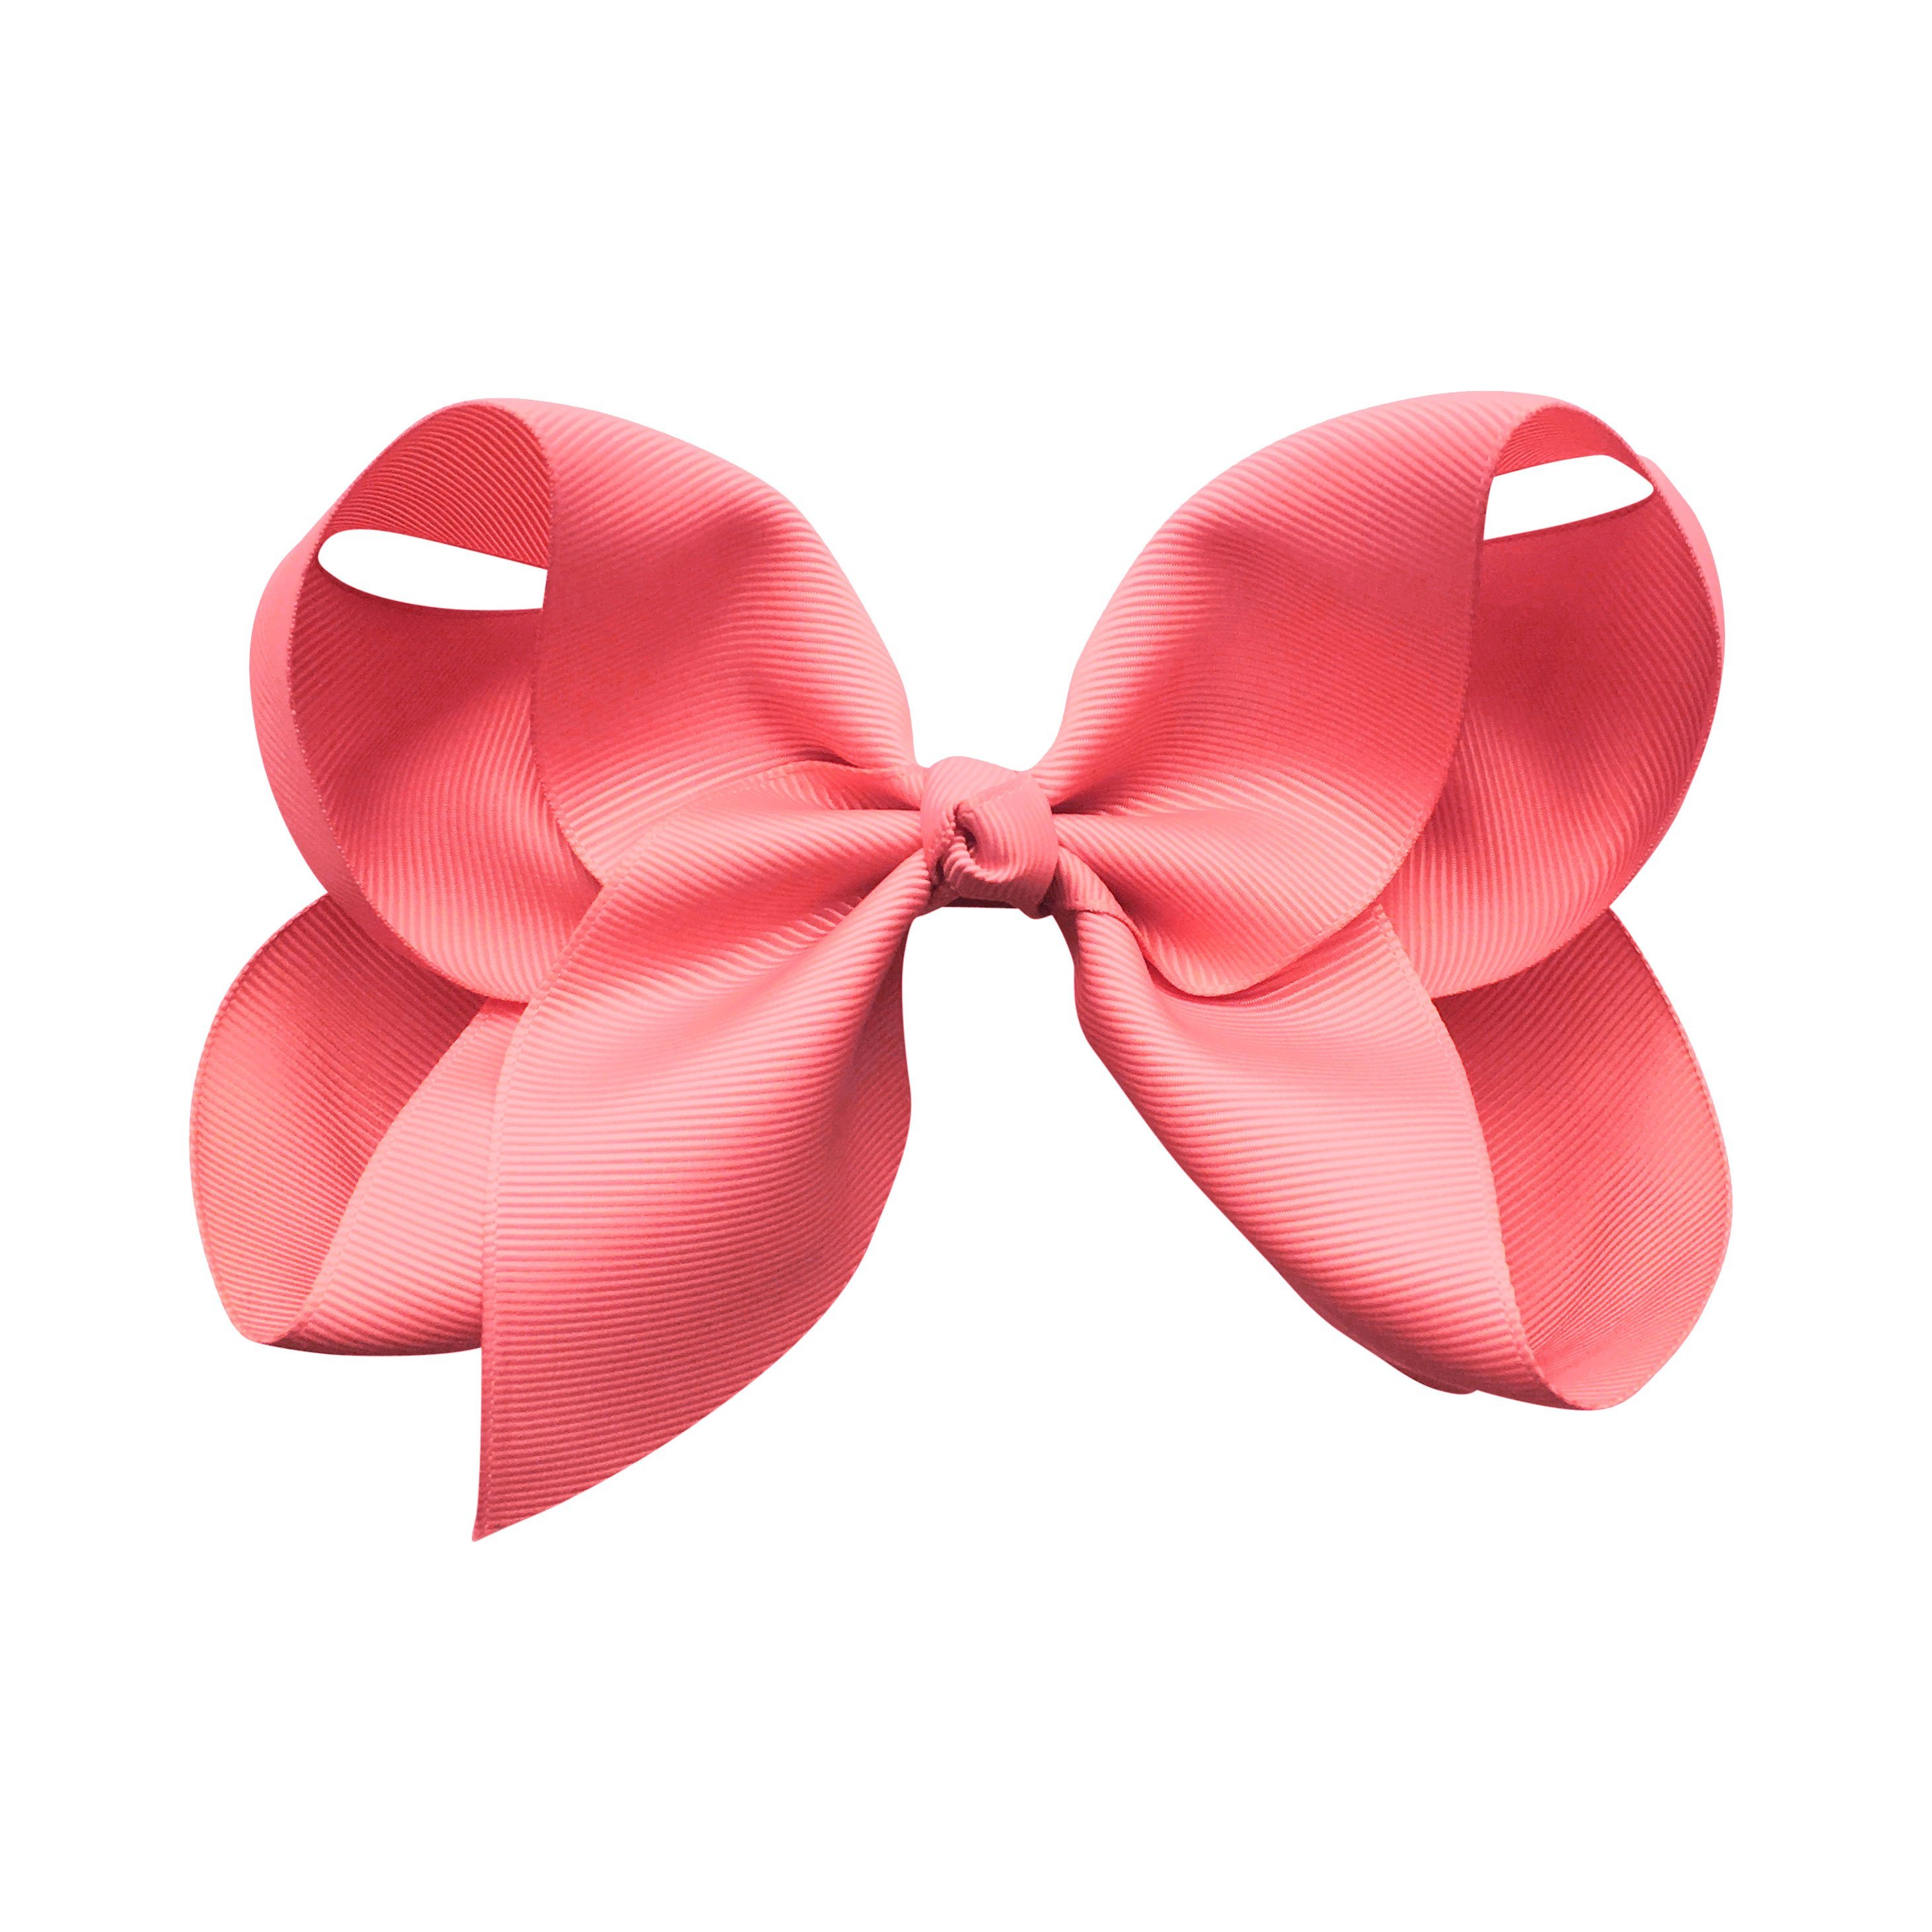 Image of Jumbo Boutique Bow - alligator clip - Coral Rose